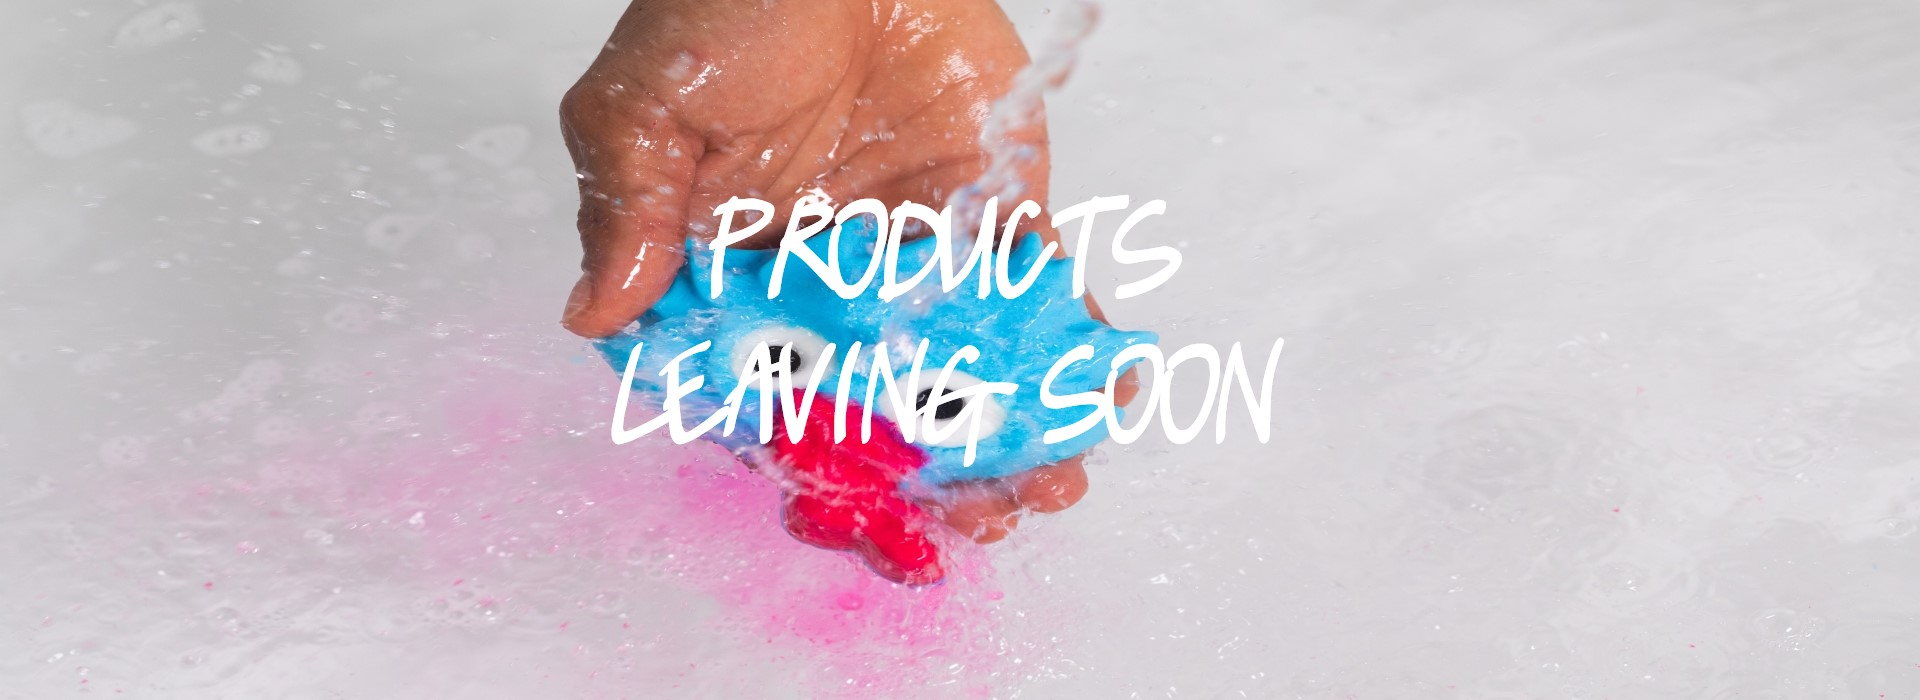 Products Leaving Soon